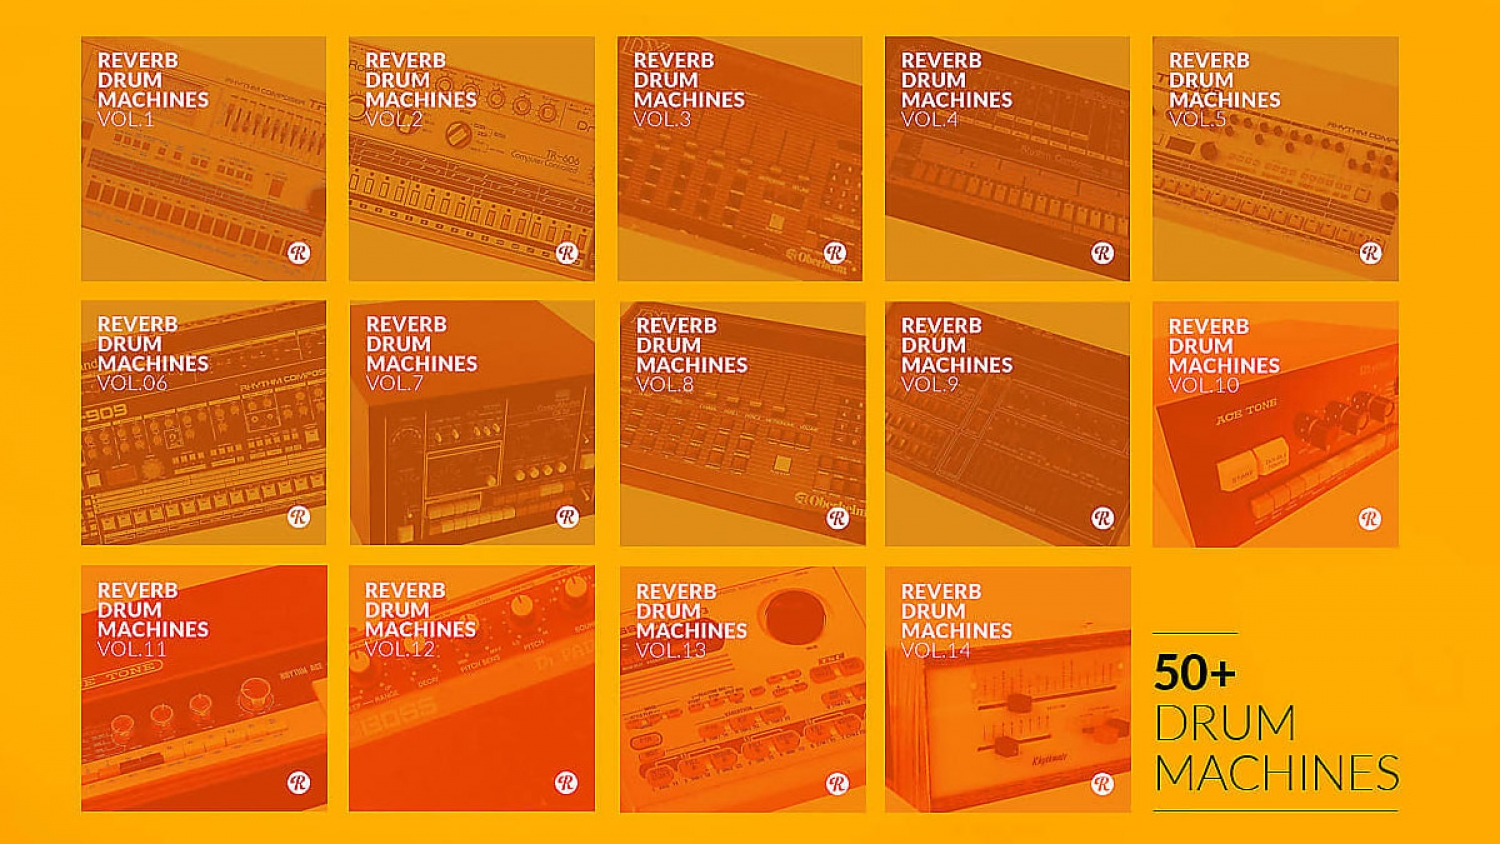 The Complete Reverb Drum Machines Collection: vasta libreria GRATUITA di campioni audio one shot e loop pubblicata da Reverb.com